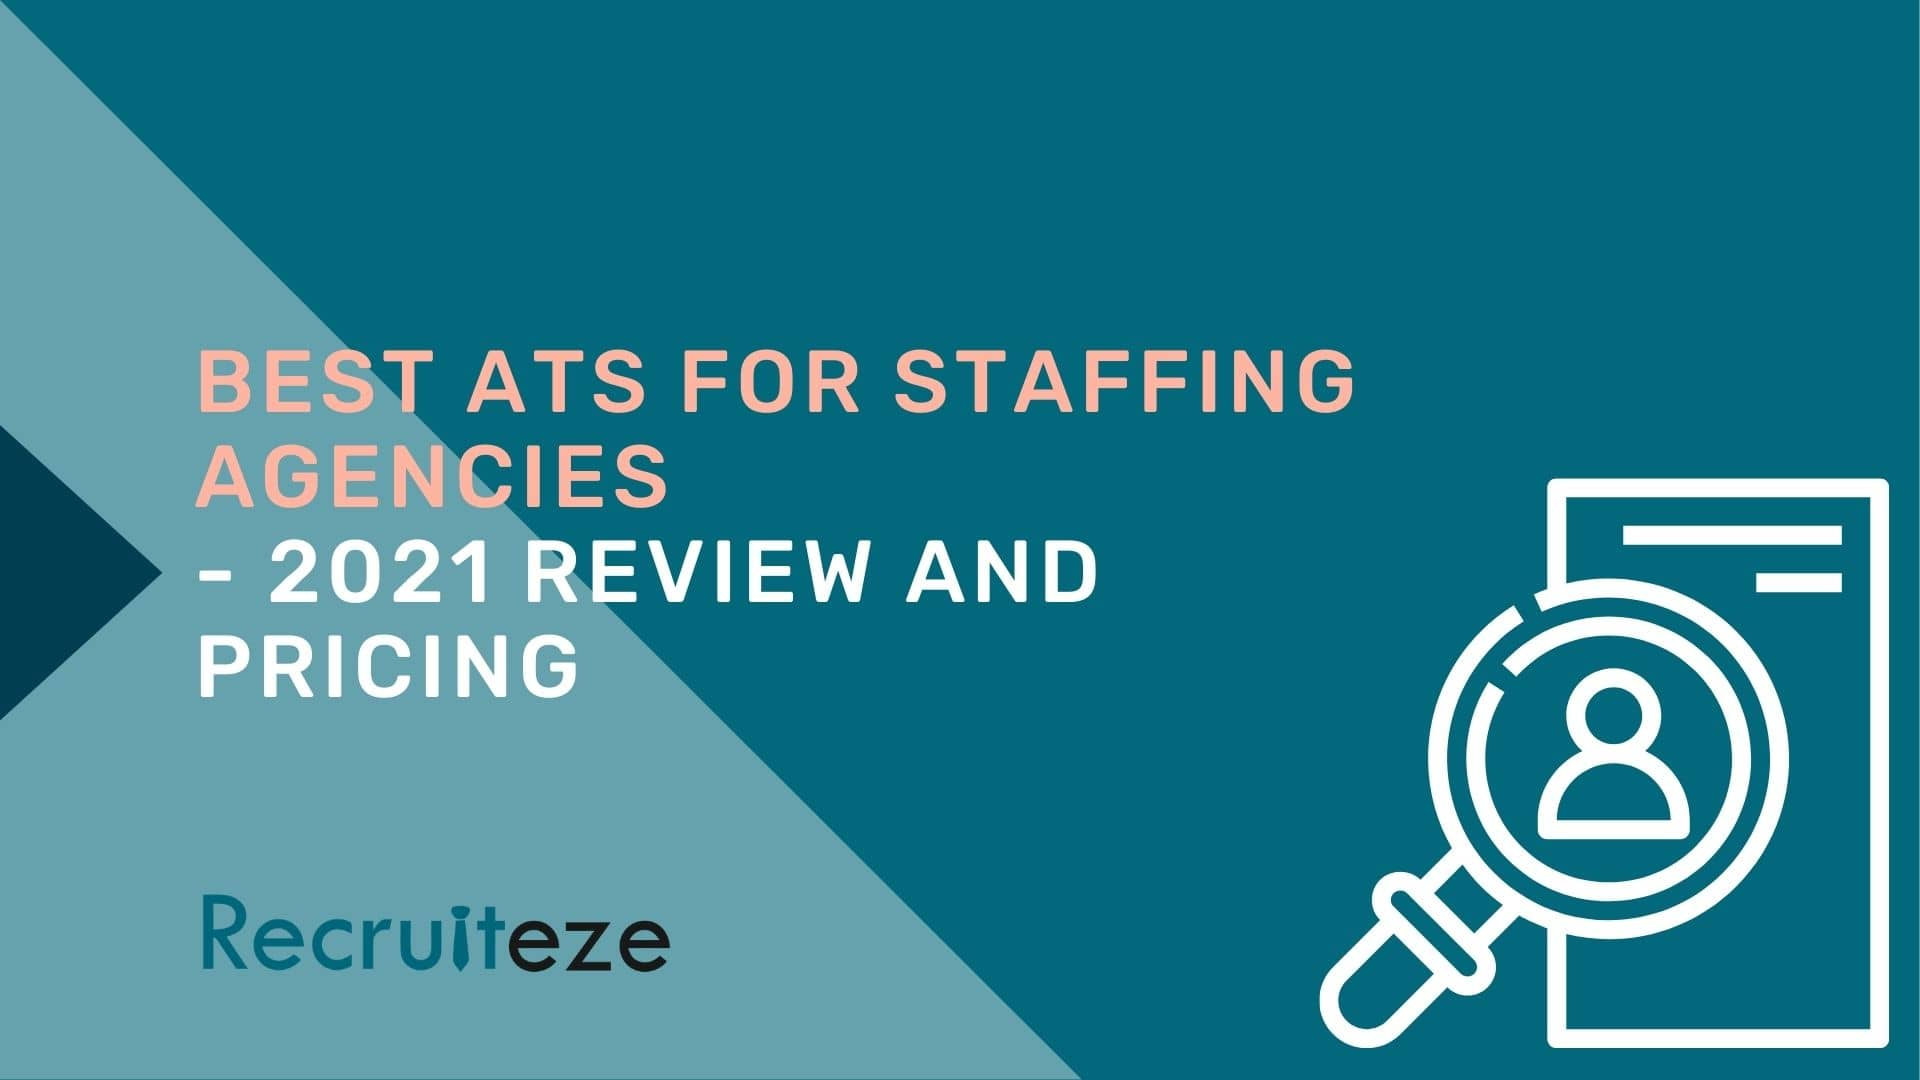 Best ATS for staffing agencies - Recruiteze featured image